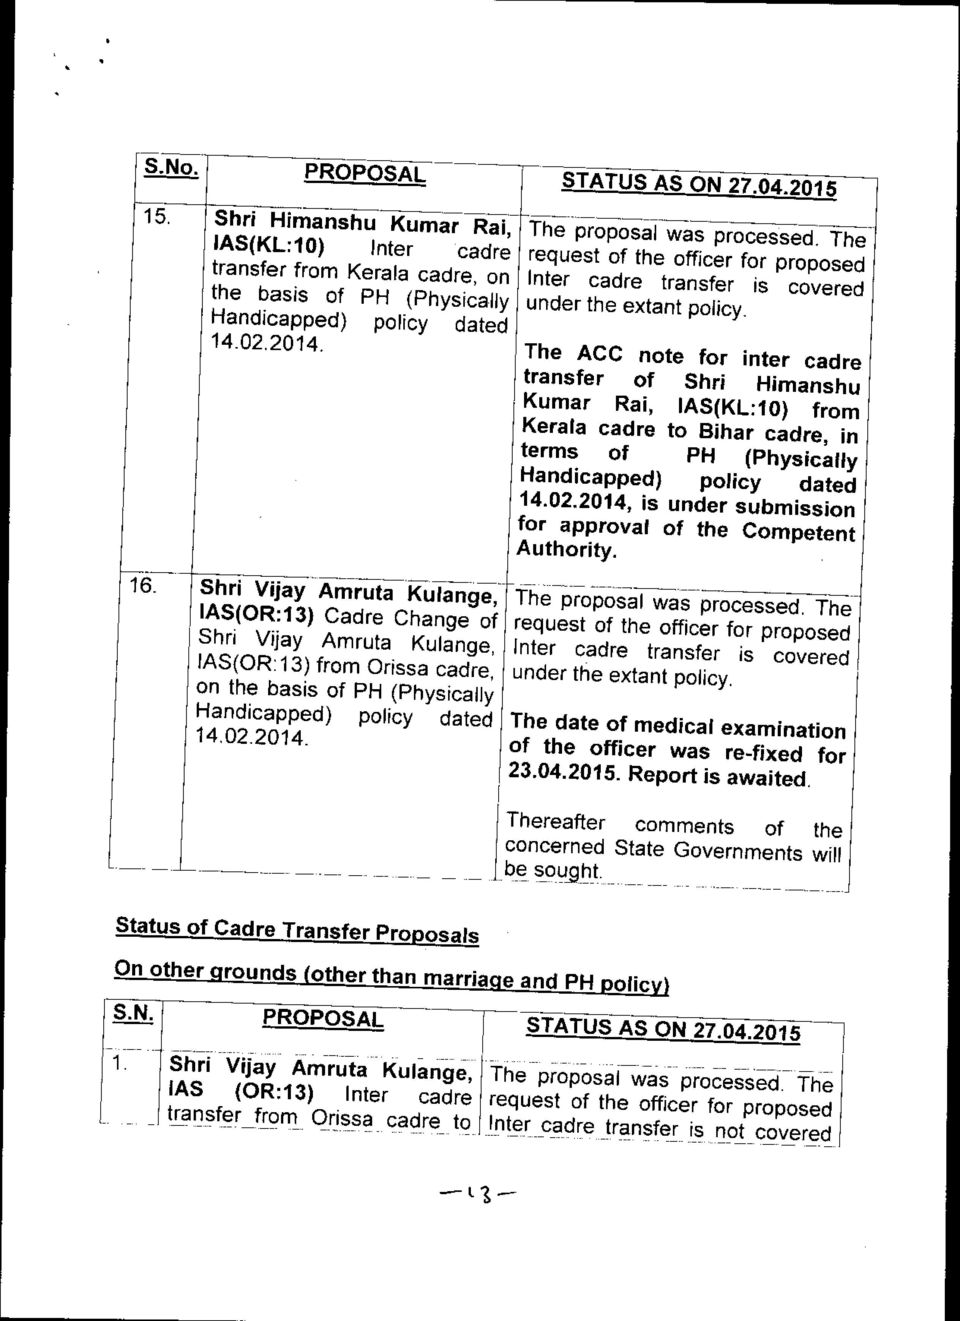 The ACC note for inter cadre transfer of Shri Himanshu Kumar Rai, las(kl:10) from Kerala cadre to Bihar cadre, in terms of PH (Physically 14.02.